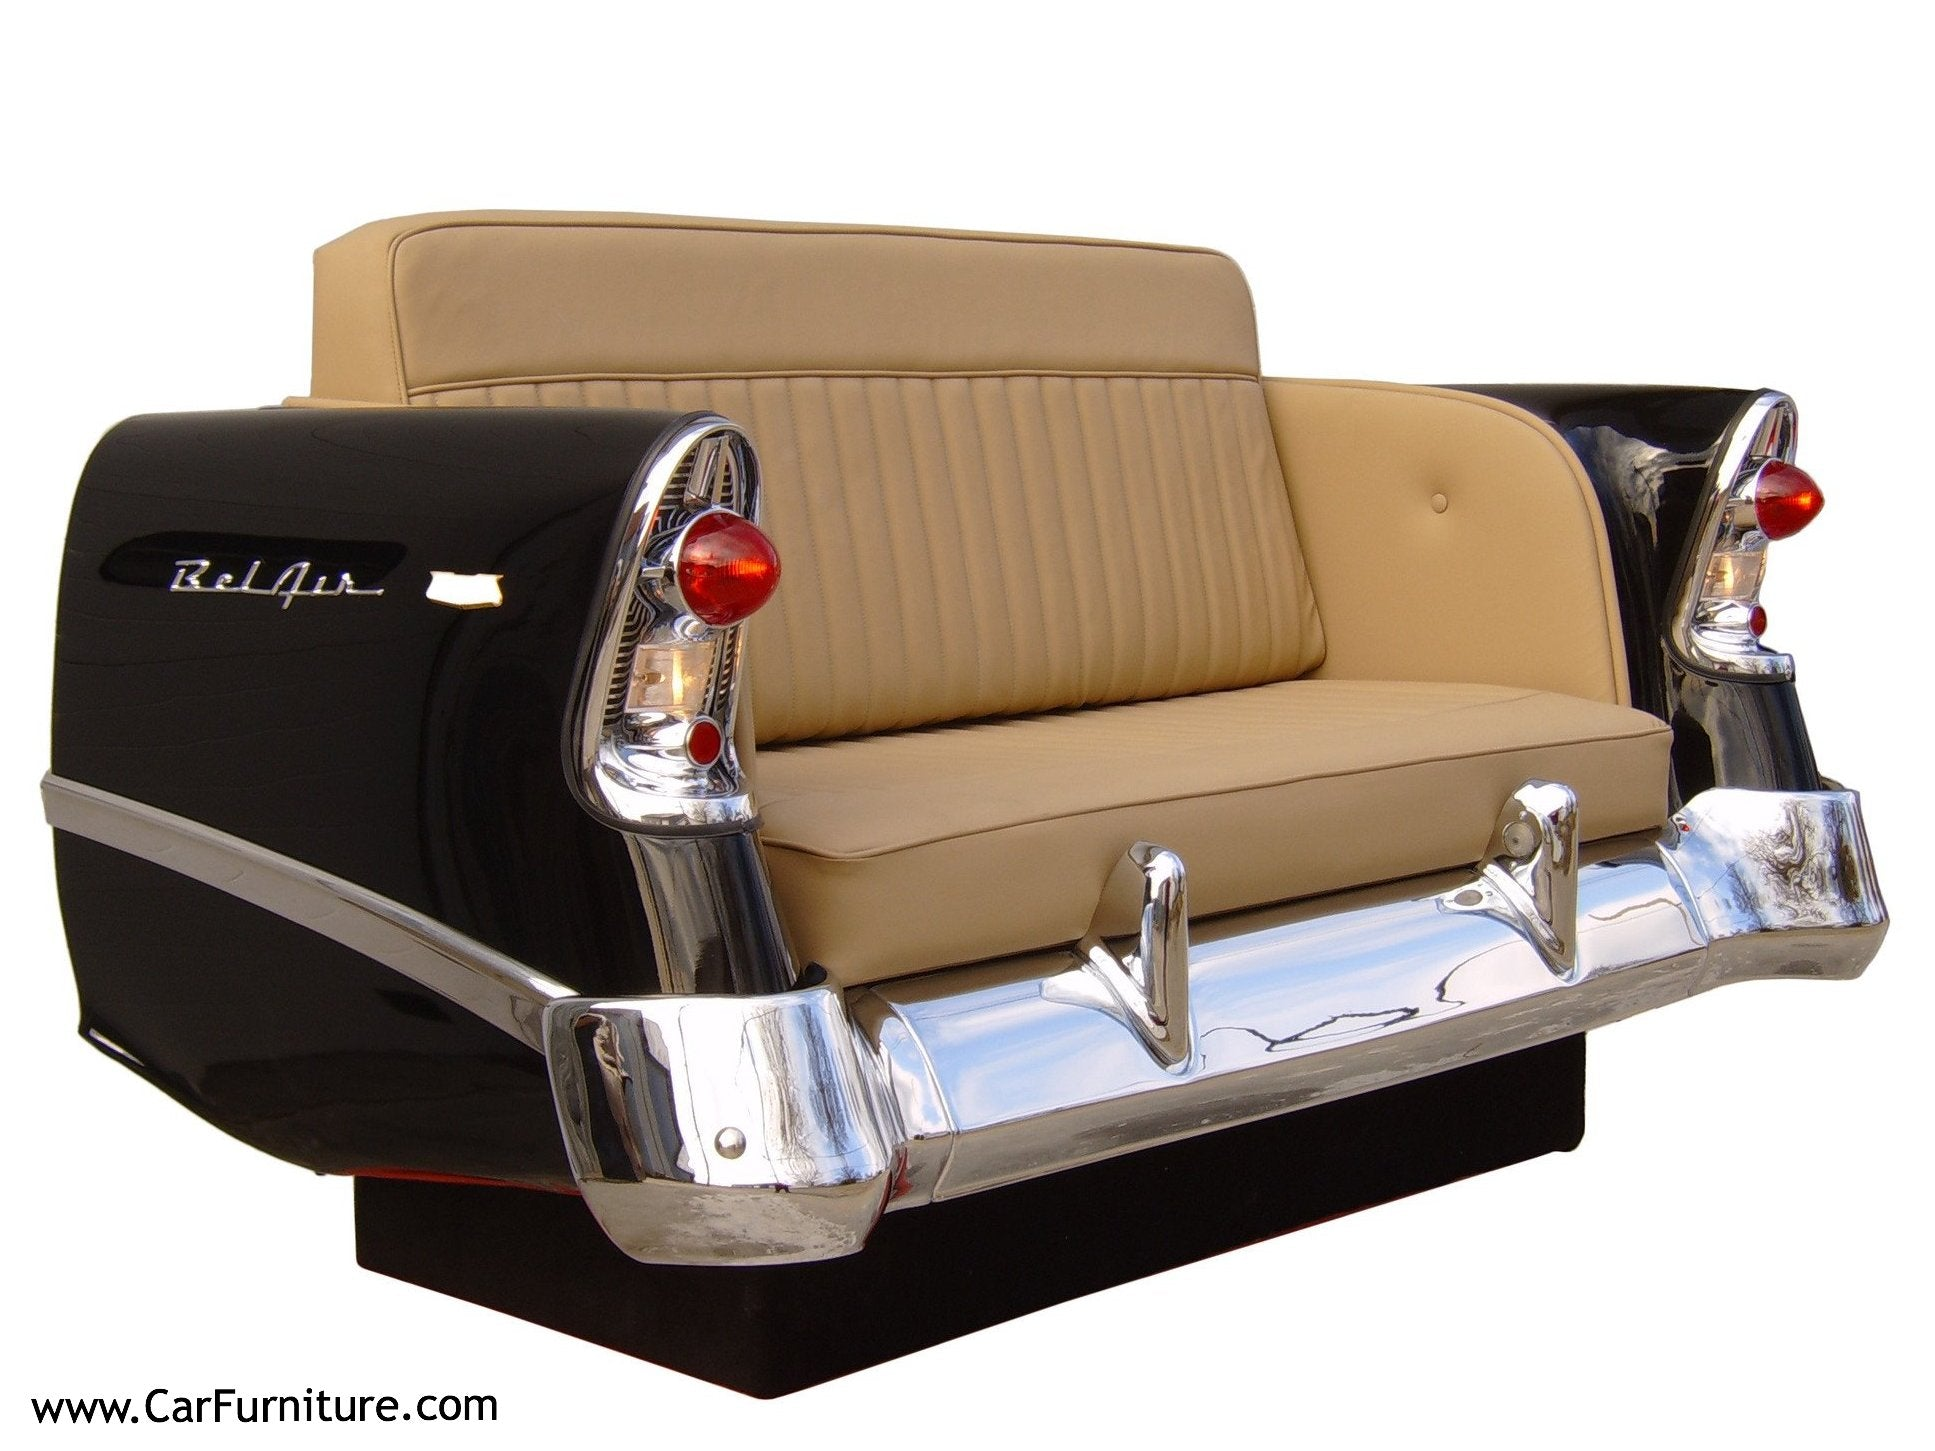 56 Chevy Bel Air Couch Carfurniture Com